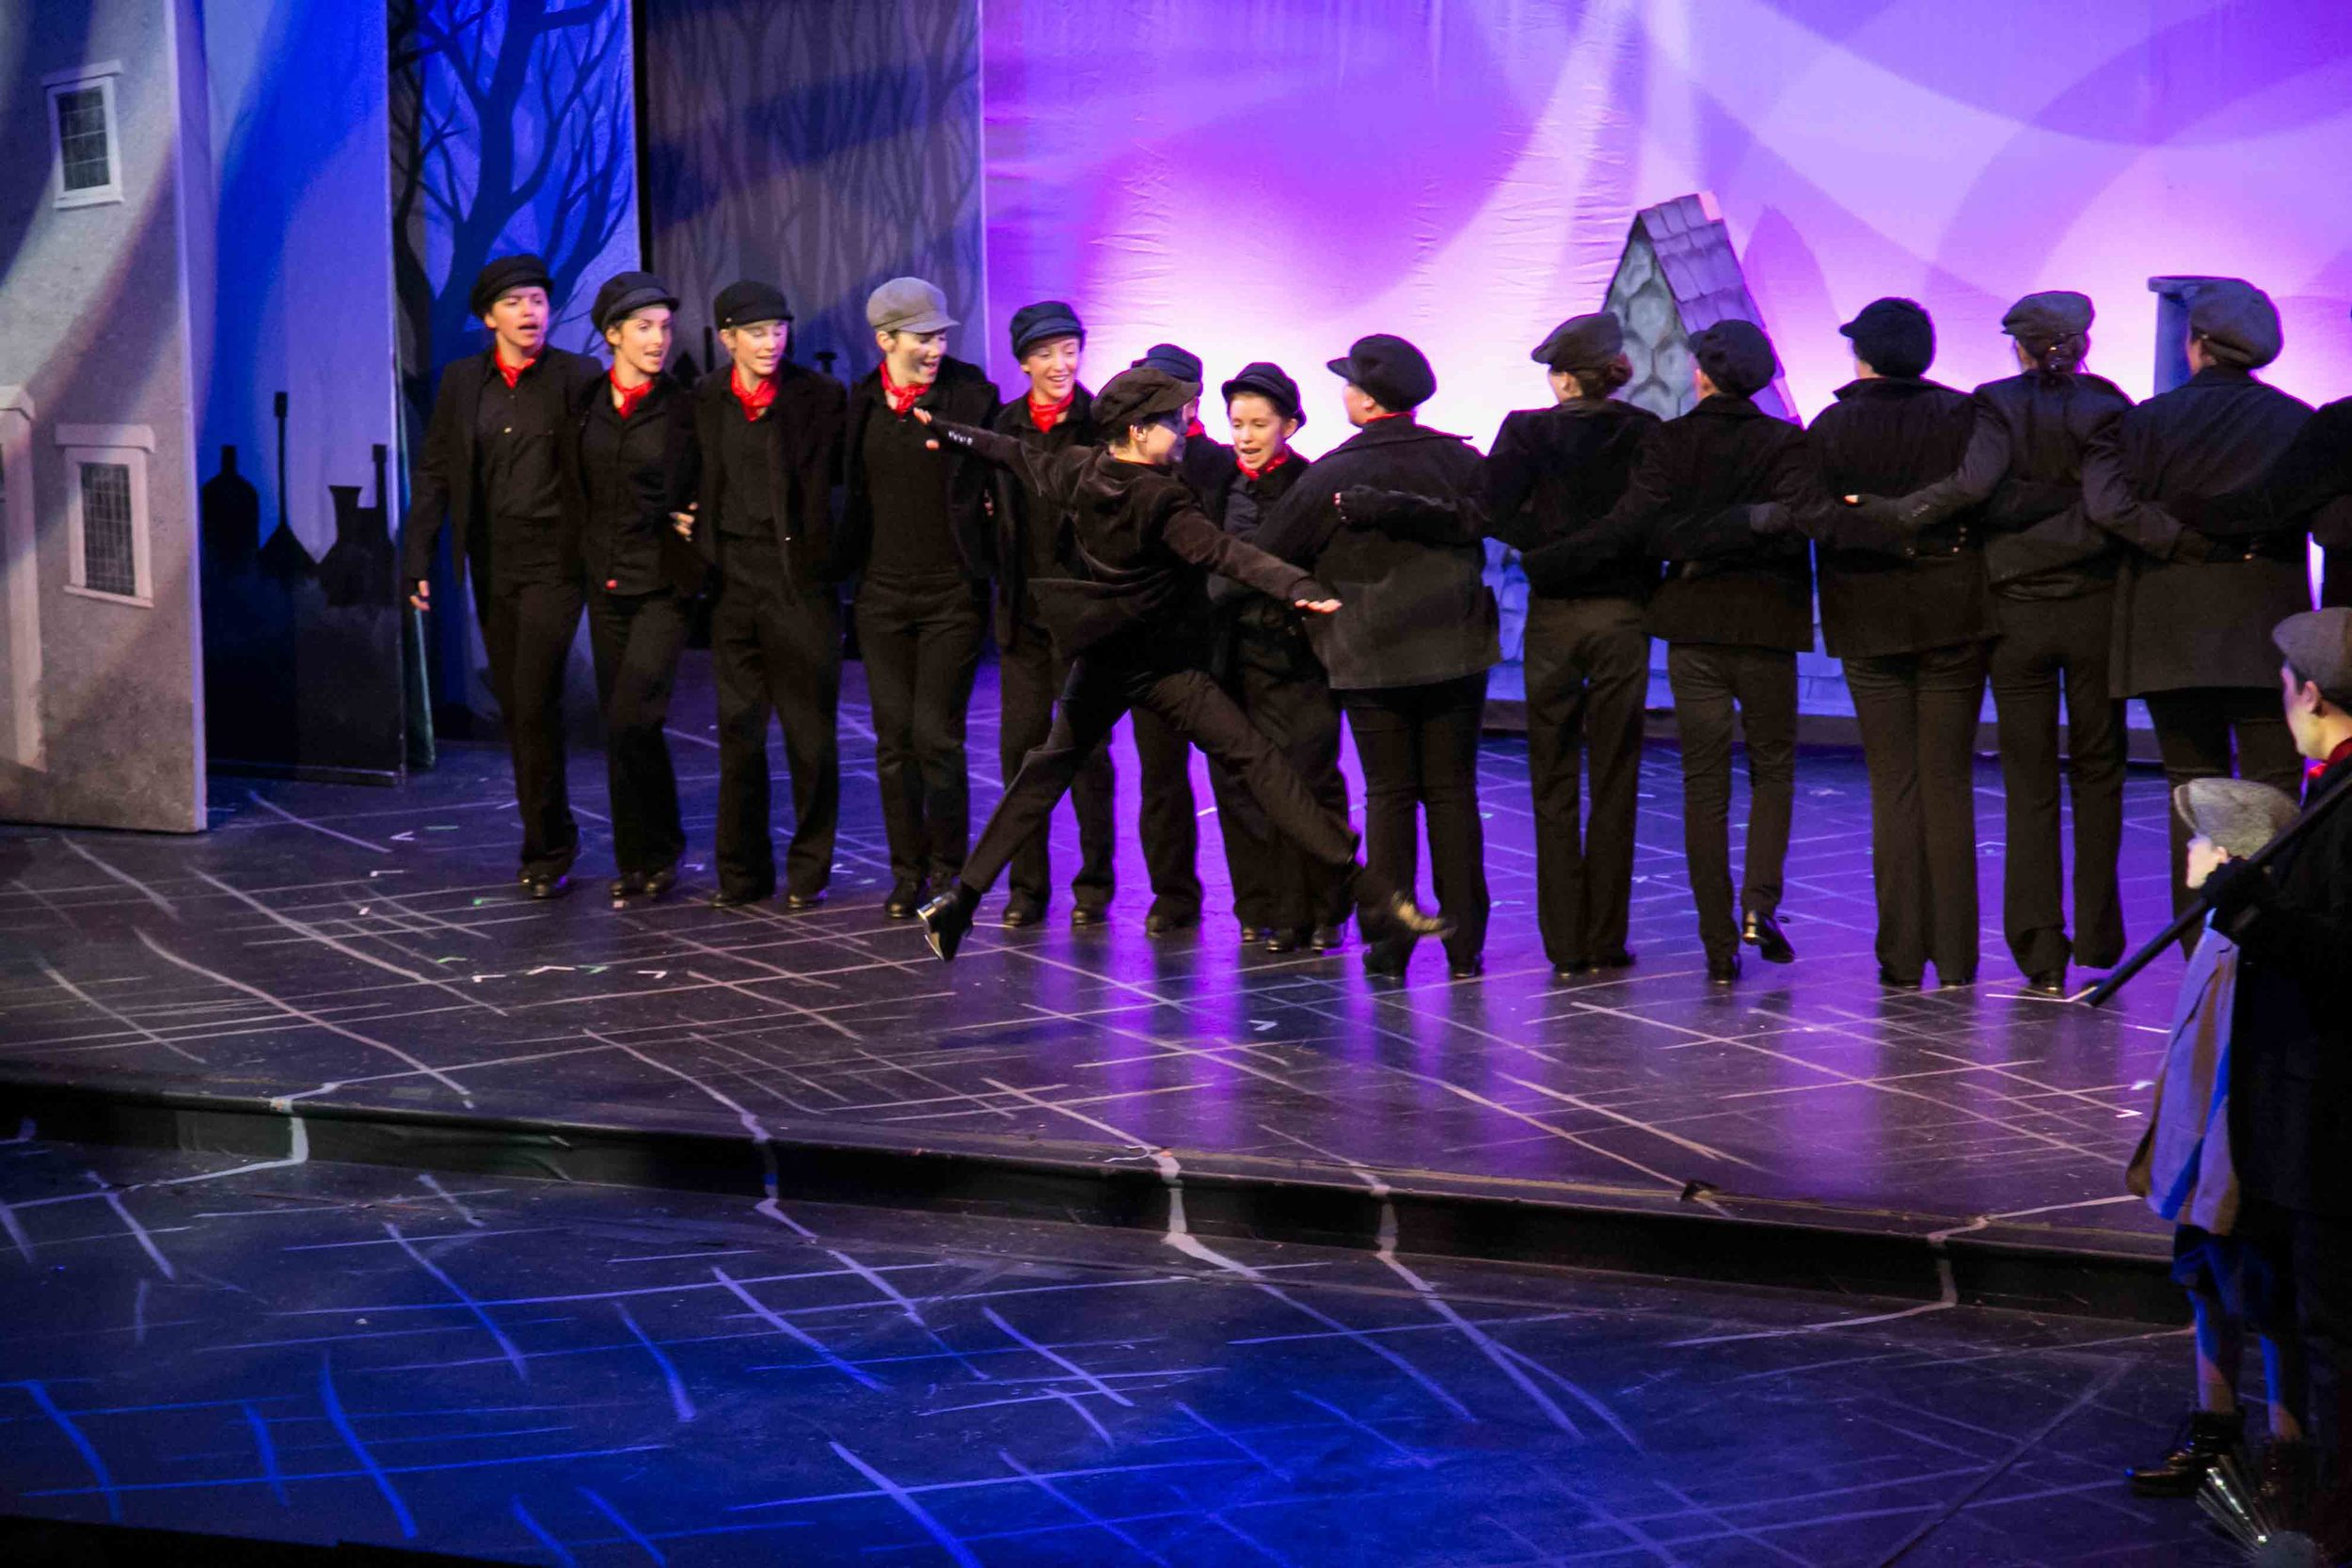 2-4-16 Mary Poppins Proper Cast 0391.jpg